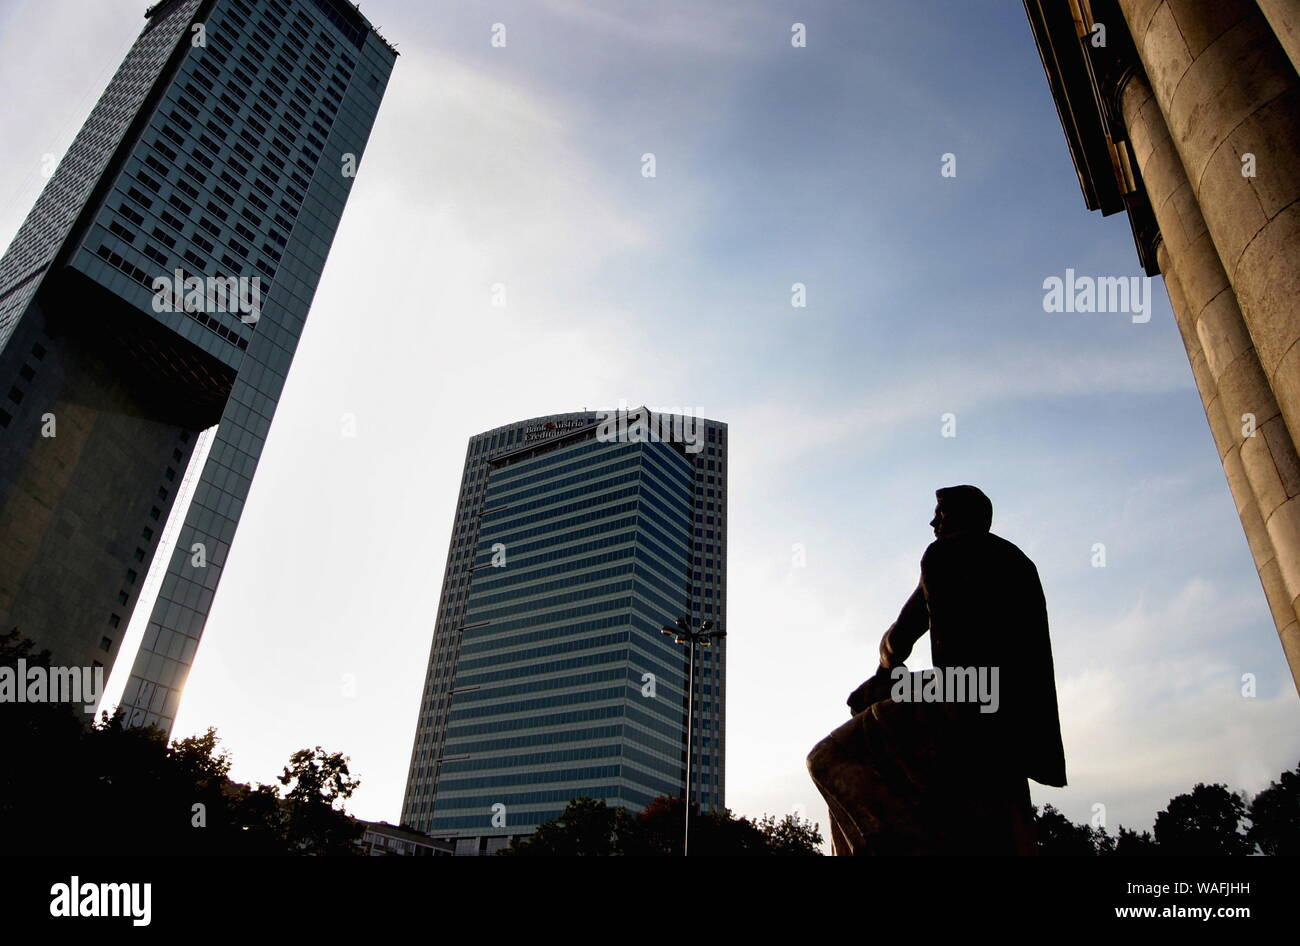 29 08 2003 High Resolution Stock Photography And Images Alamy